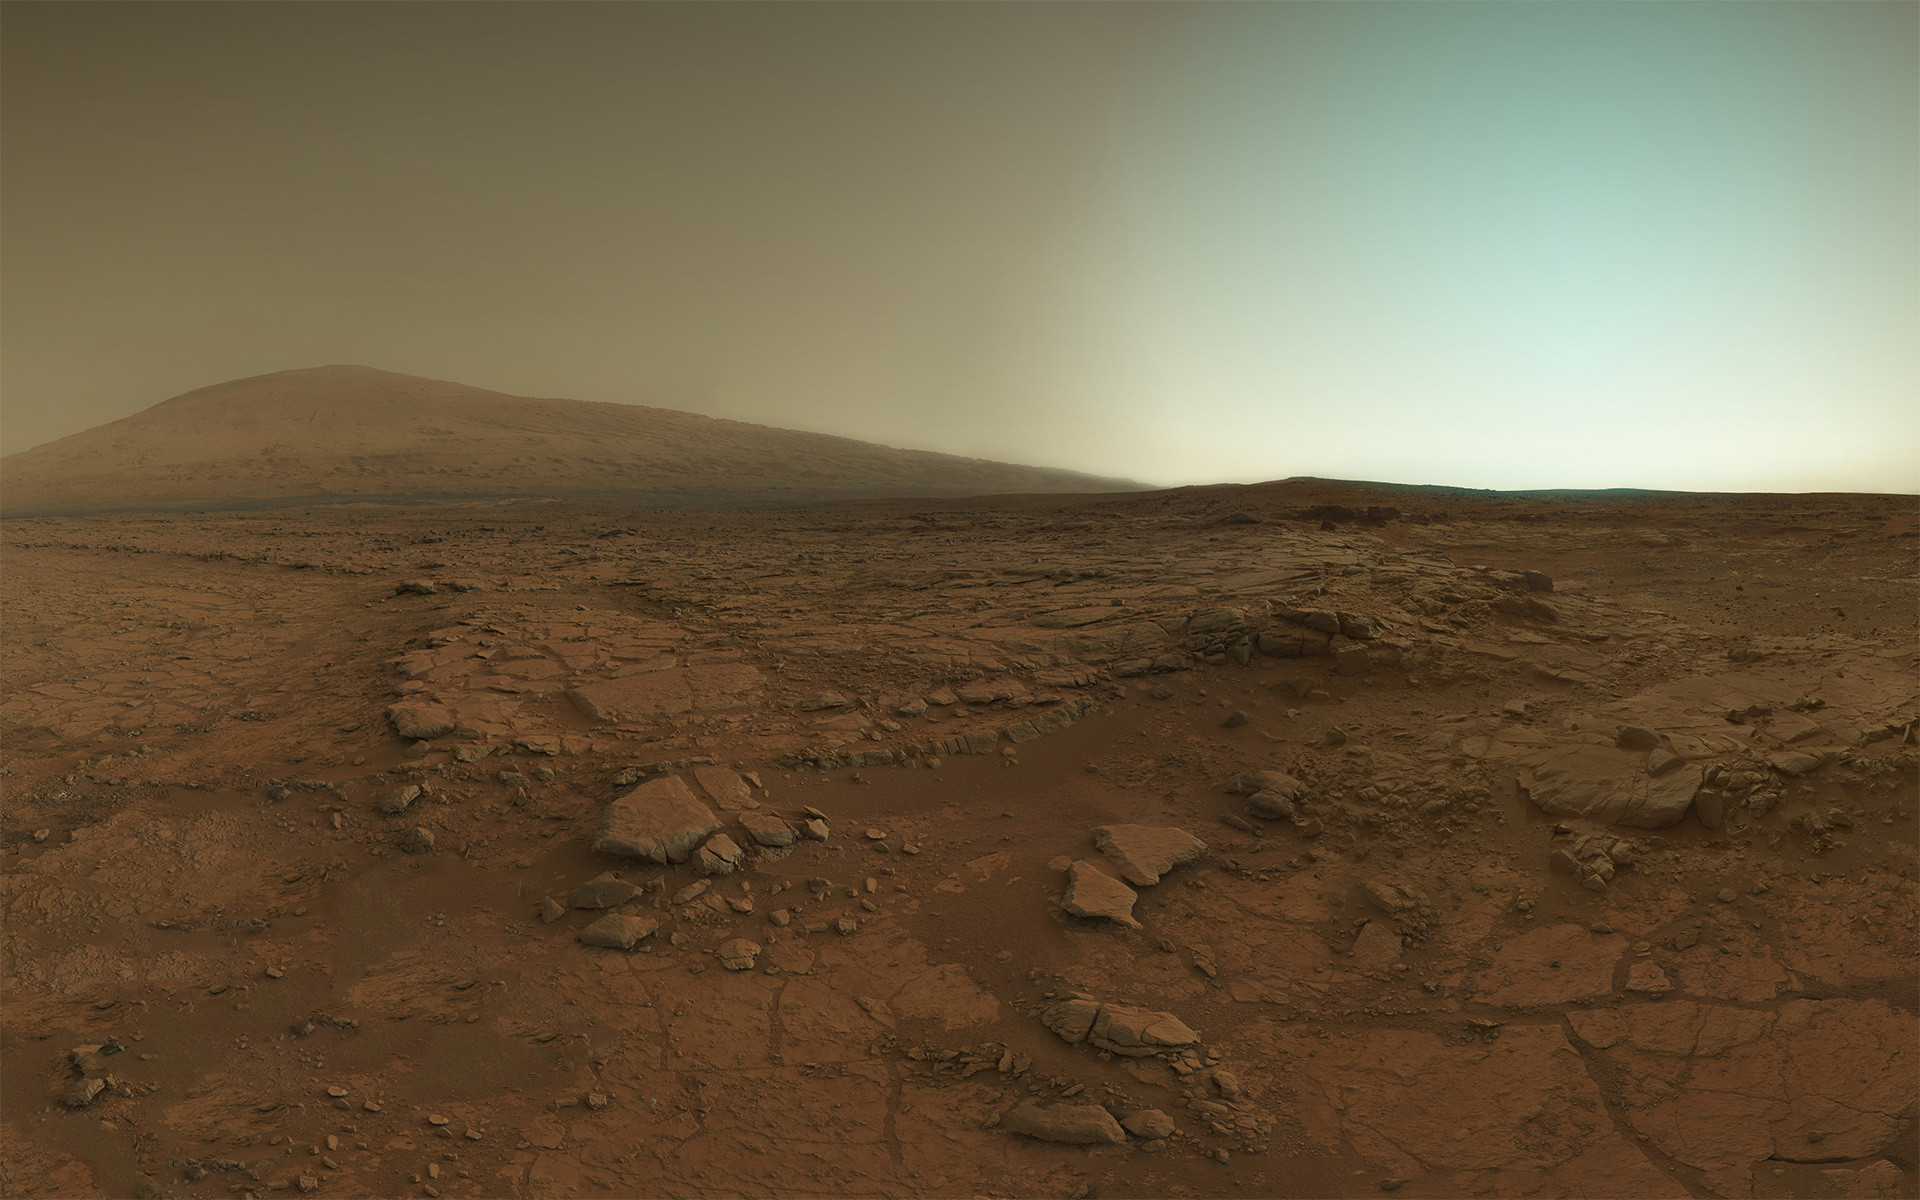 Mars at sunset, as taken by the Mars Curiosity rover